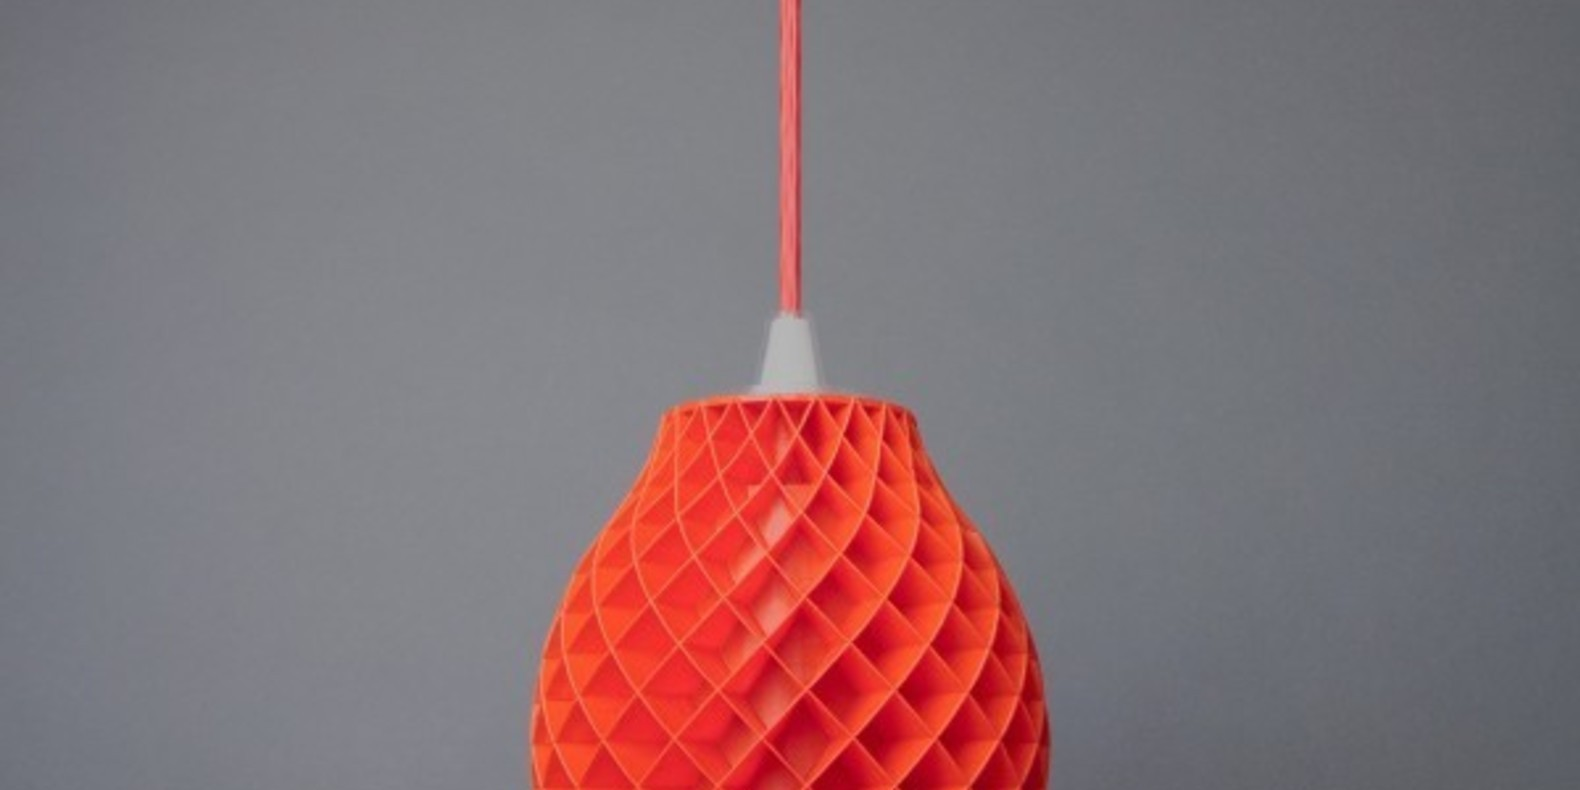 A design lamp printed in 3D